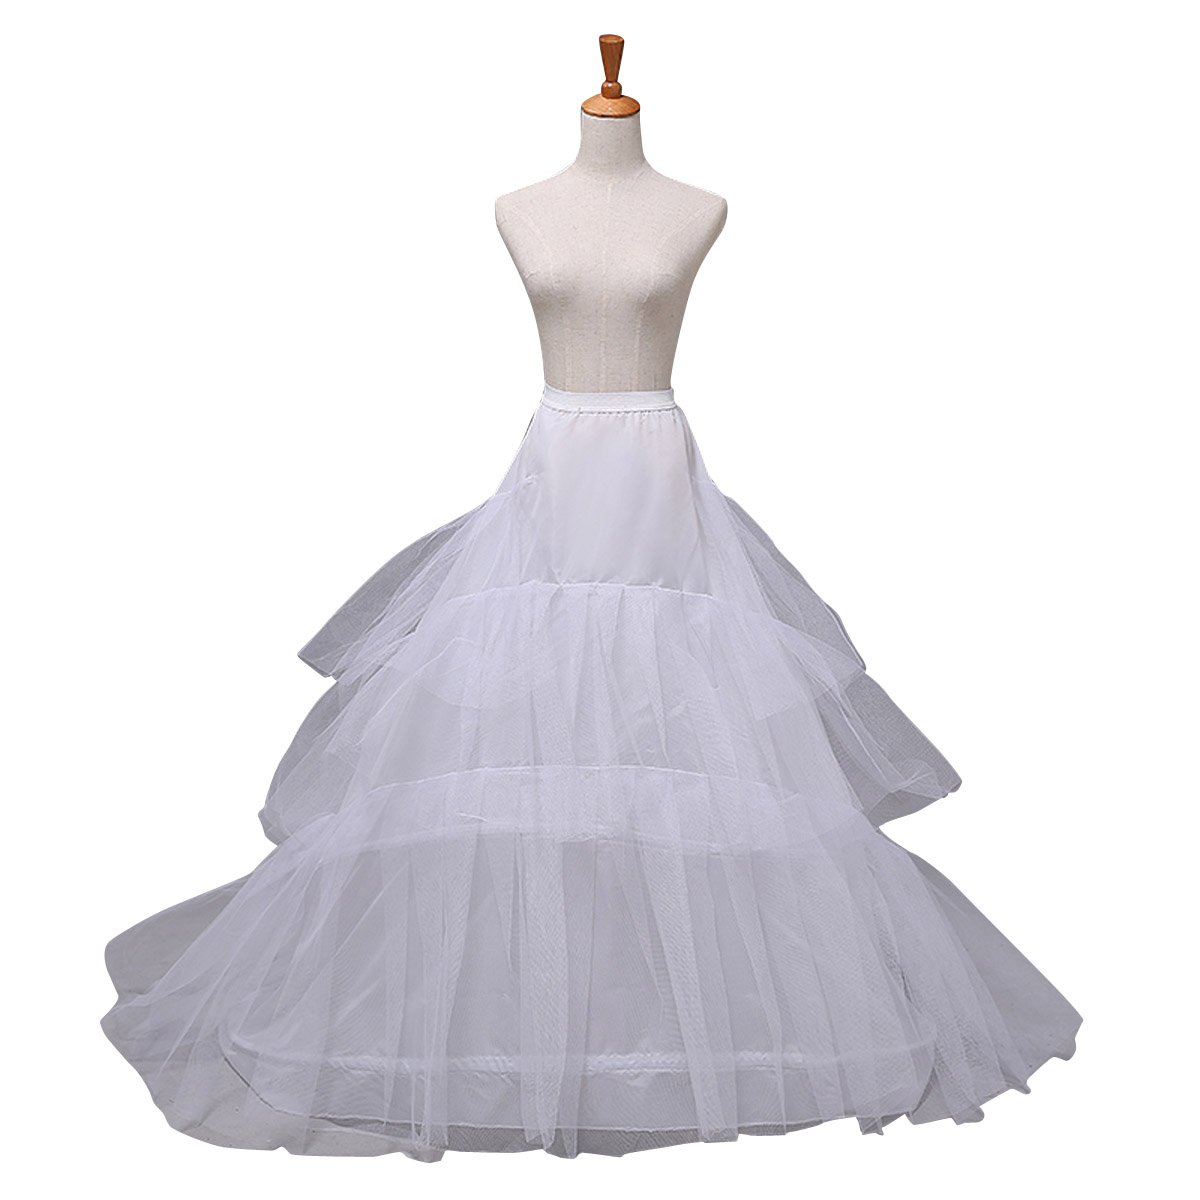 Clearbridal Women\'s White Wedding Petticoats 2 Hoops 3 Layer Bridal ...